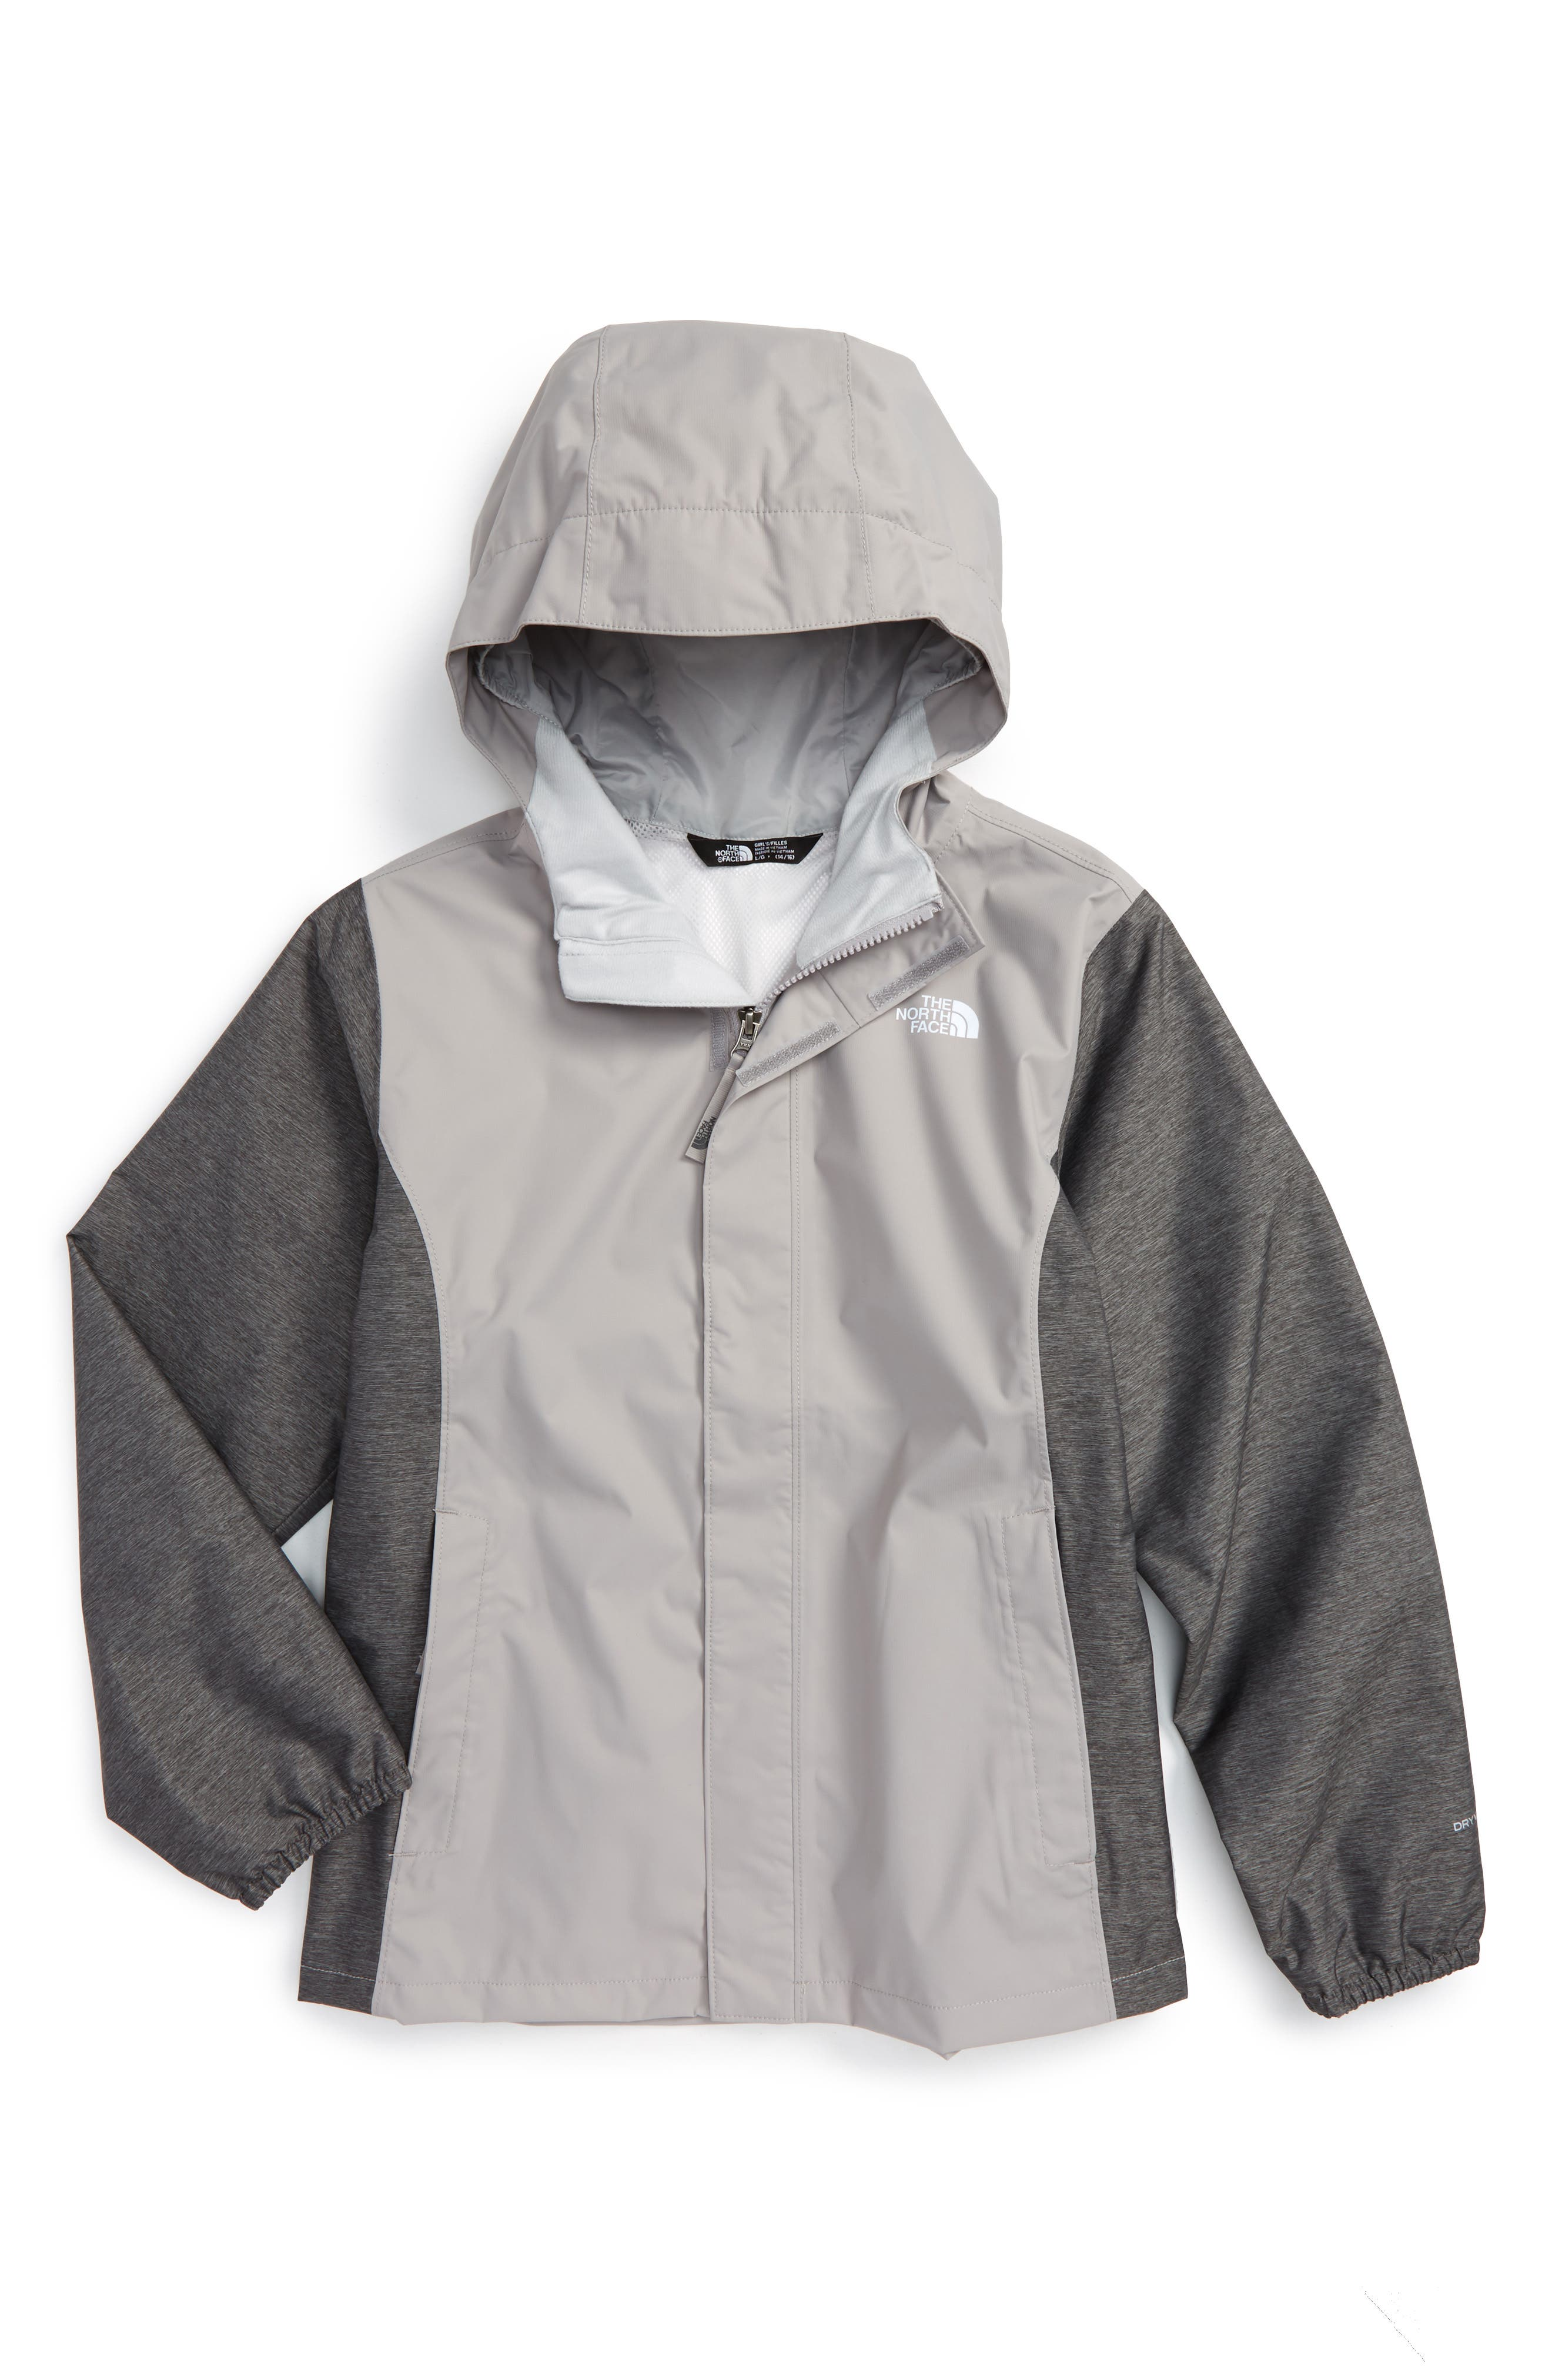 'Resolve' Reflective Waterproof Jacket,                         Main,                         color, Silver